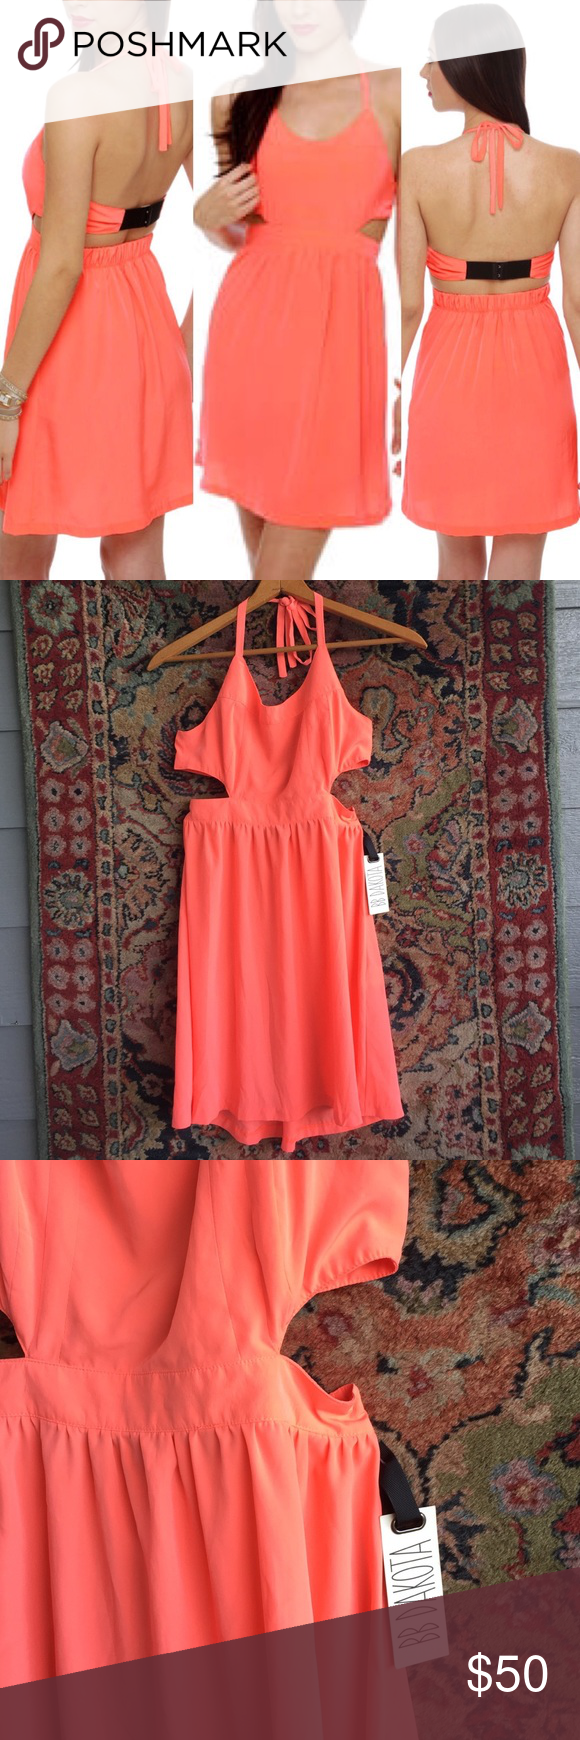 "BB Dakota Halter Dress The only Dress you'll need in hot temps! A neon coral and adjustable back and neck tie. 14.75 - 15.25"" back, 12.75"" waist and 34.5"" L BB Dakota Dresses Mini"